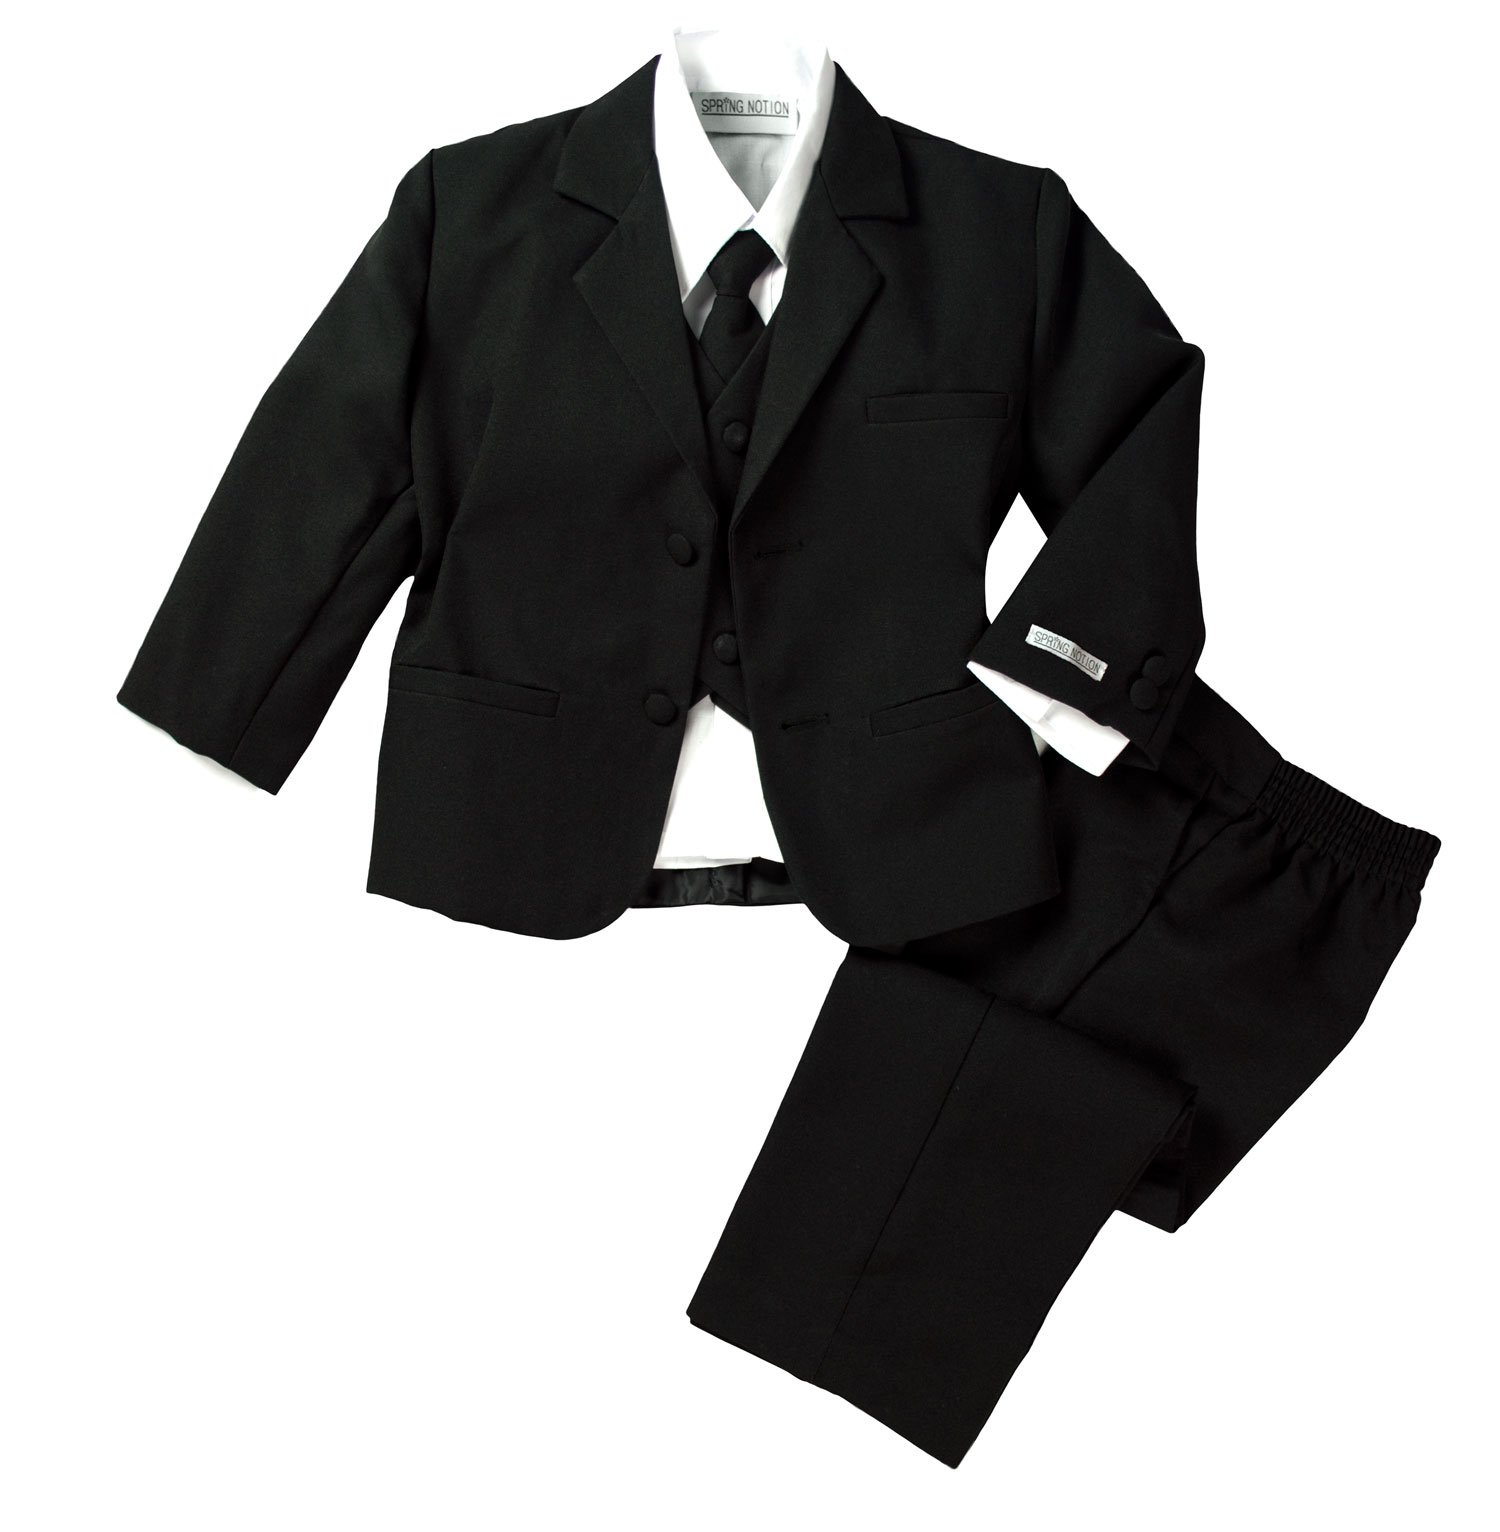 Spring Notion Baby Boys' Classic Fit Formal Black Dress Suit Set 18M (Large) by Spring Notion